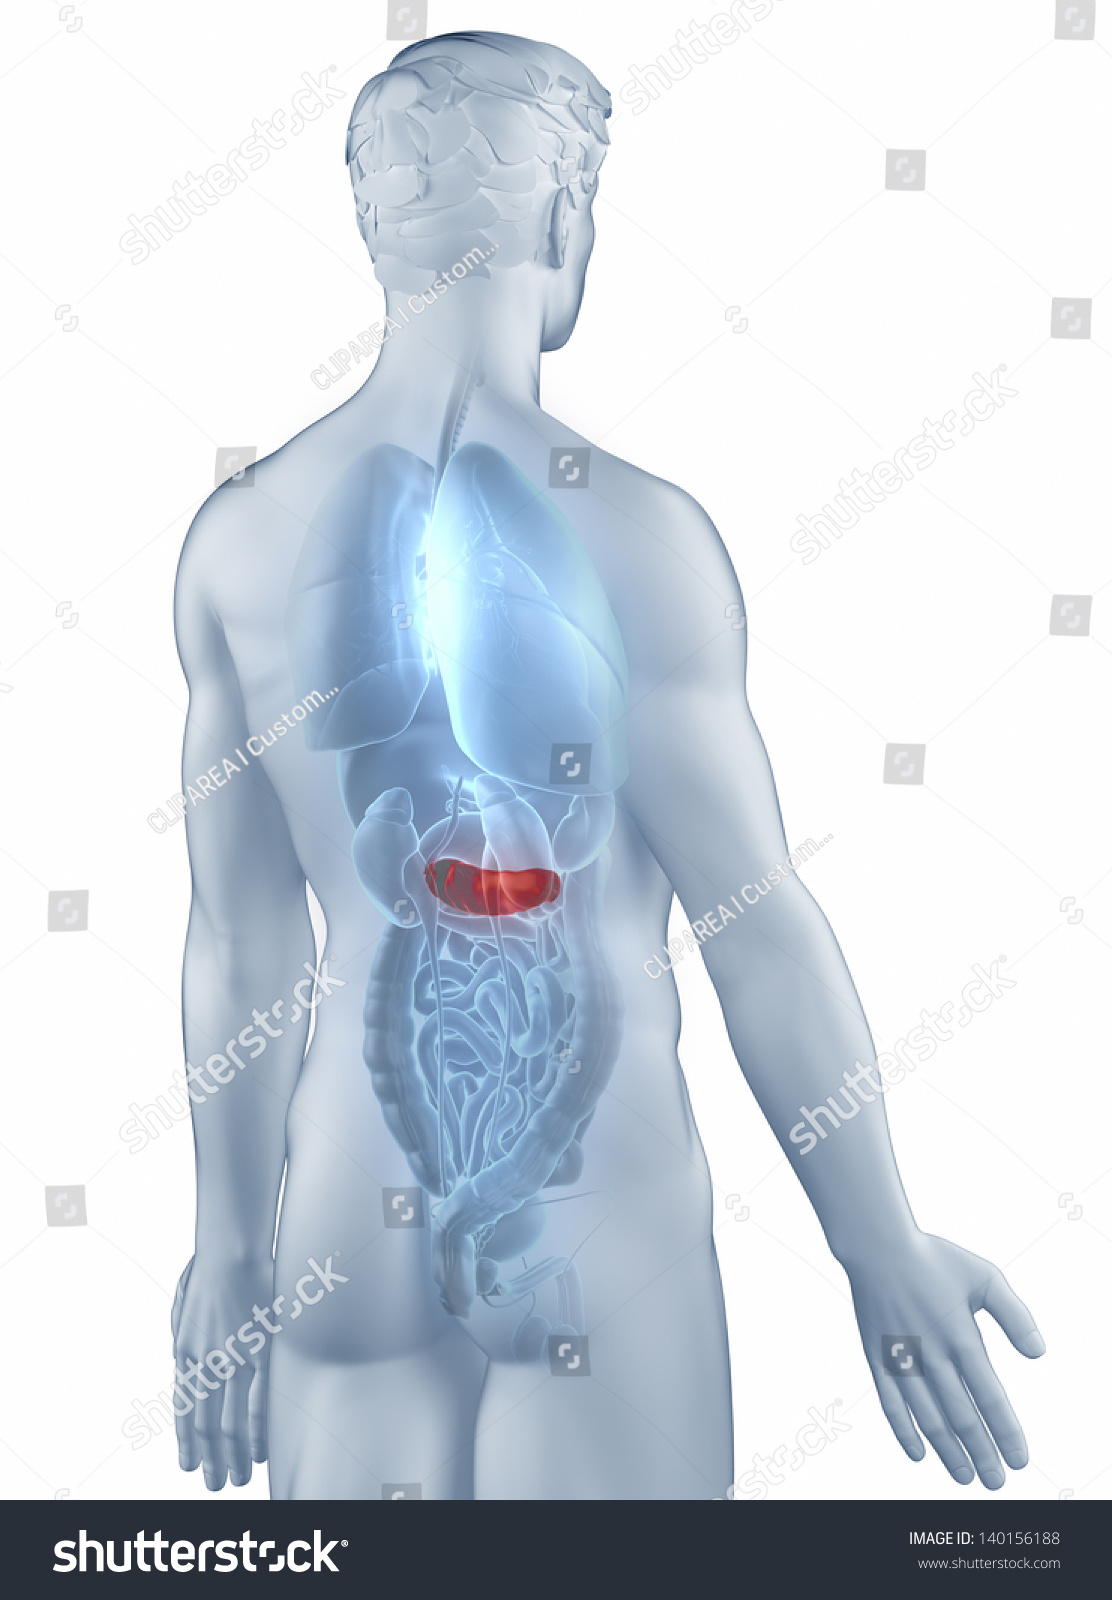 Pancreas Position Anatomy Man Isolated Posterior View Stock Photo 140156188   Shutterstock